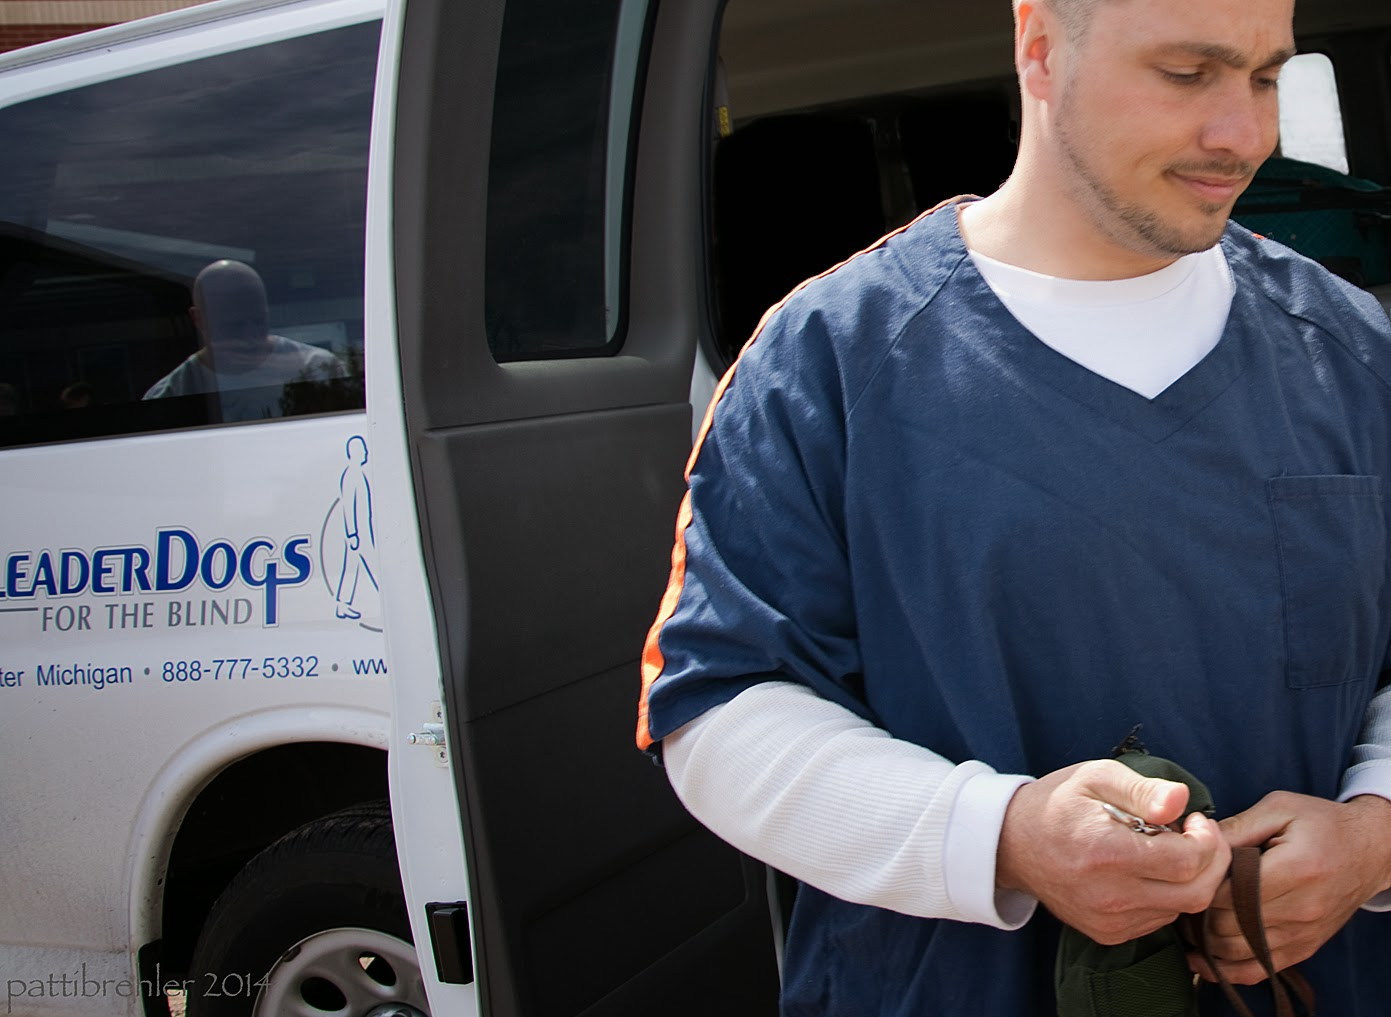 A man waring a blue shirt with a long sleeved white shirt under it is walking away from the Leader Dog white van, he is looking down and is holding a green treat bag and a leash in his hands, which are by his waist.